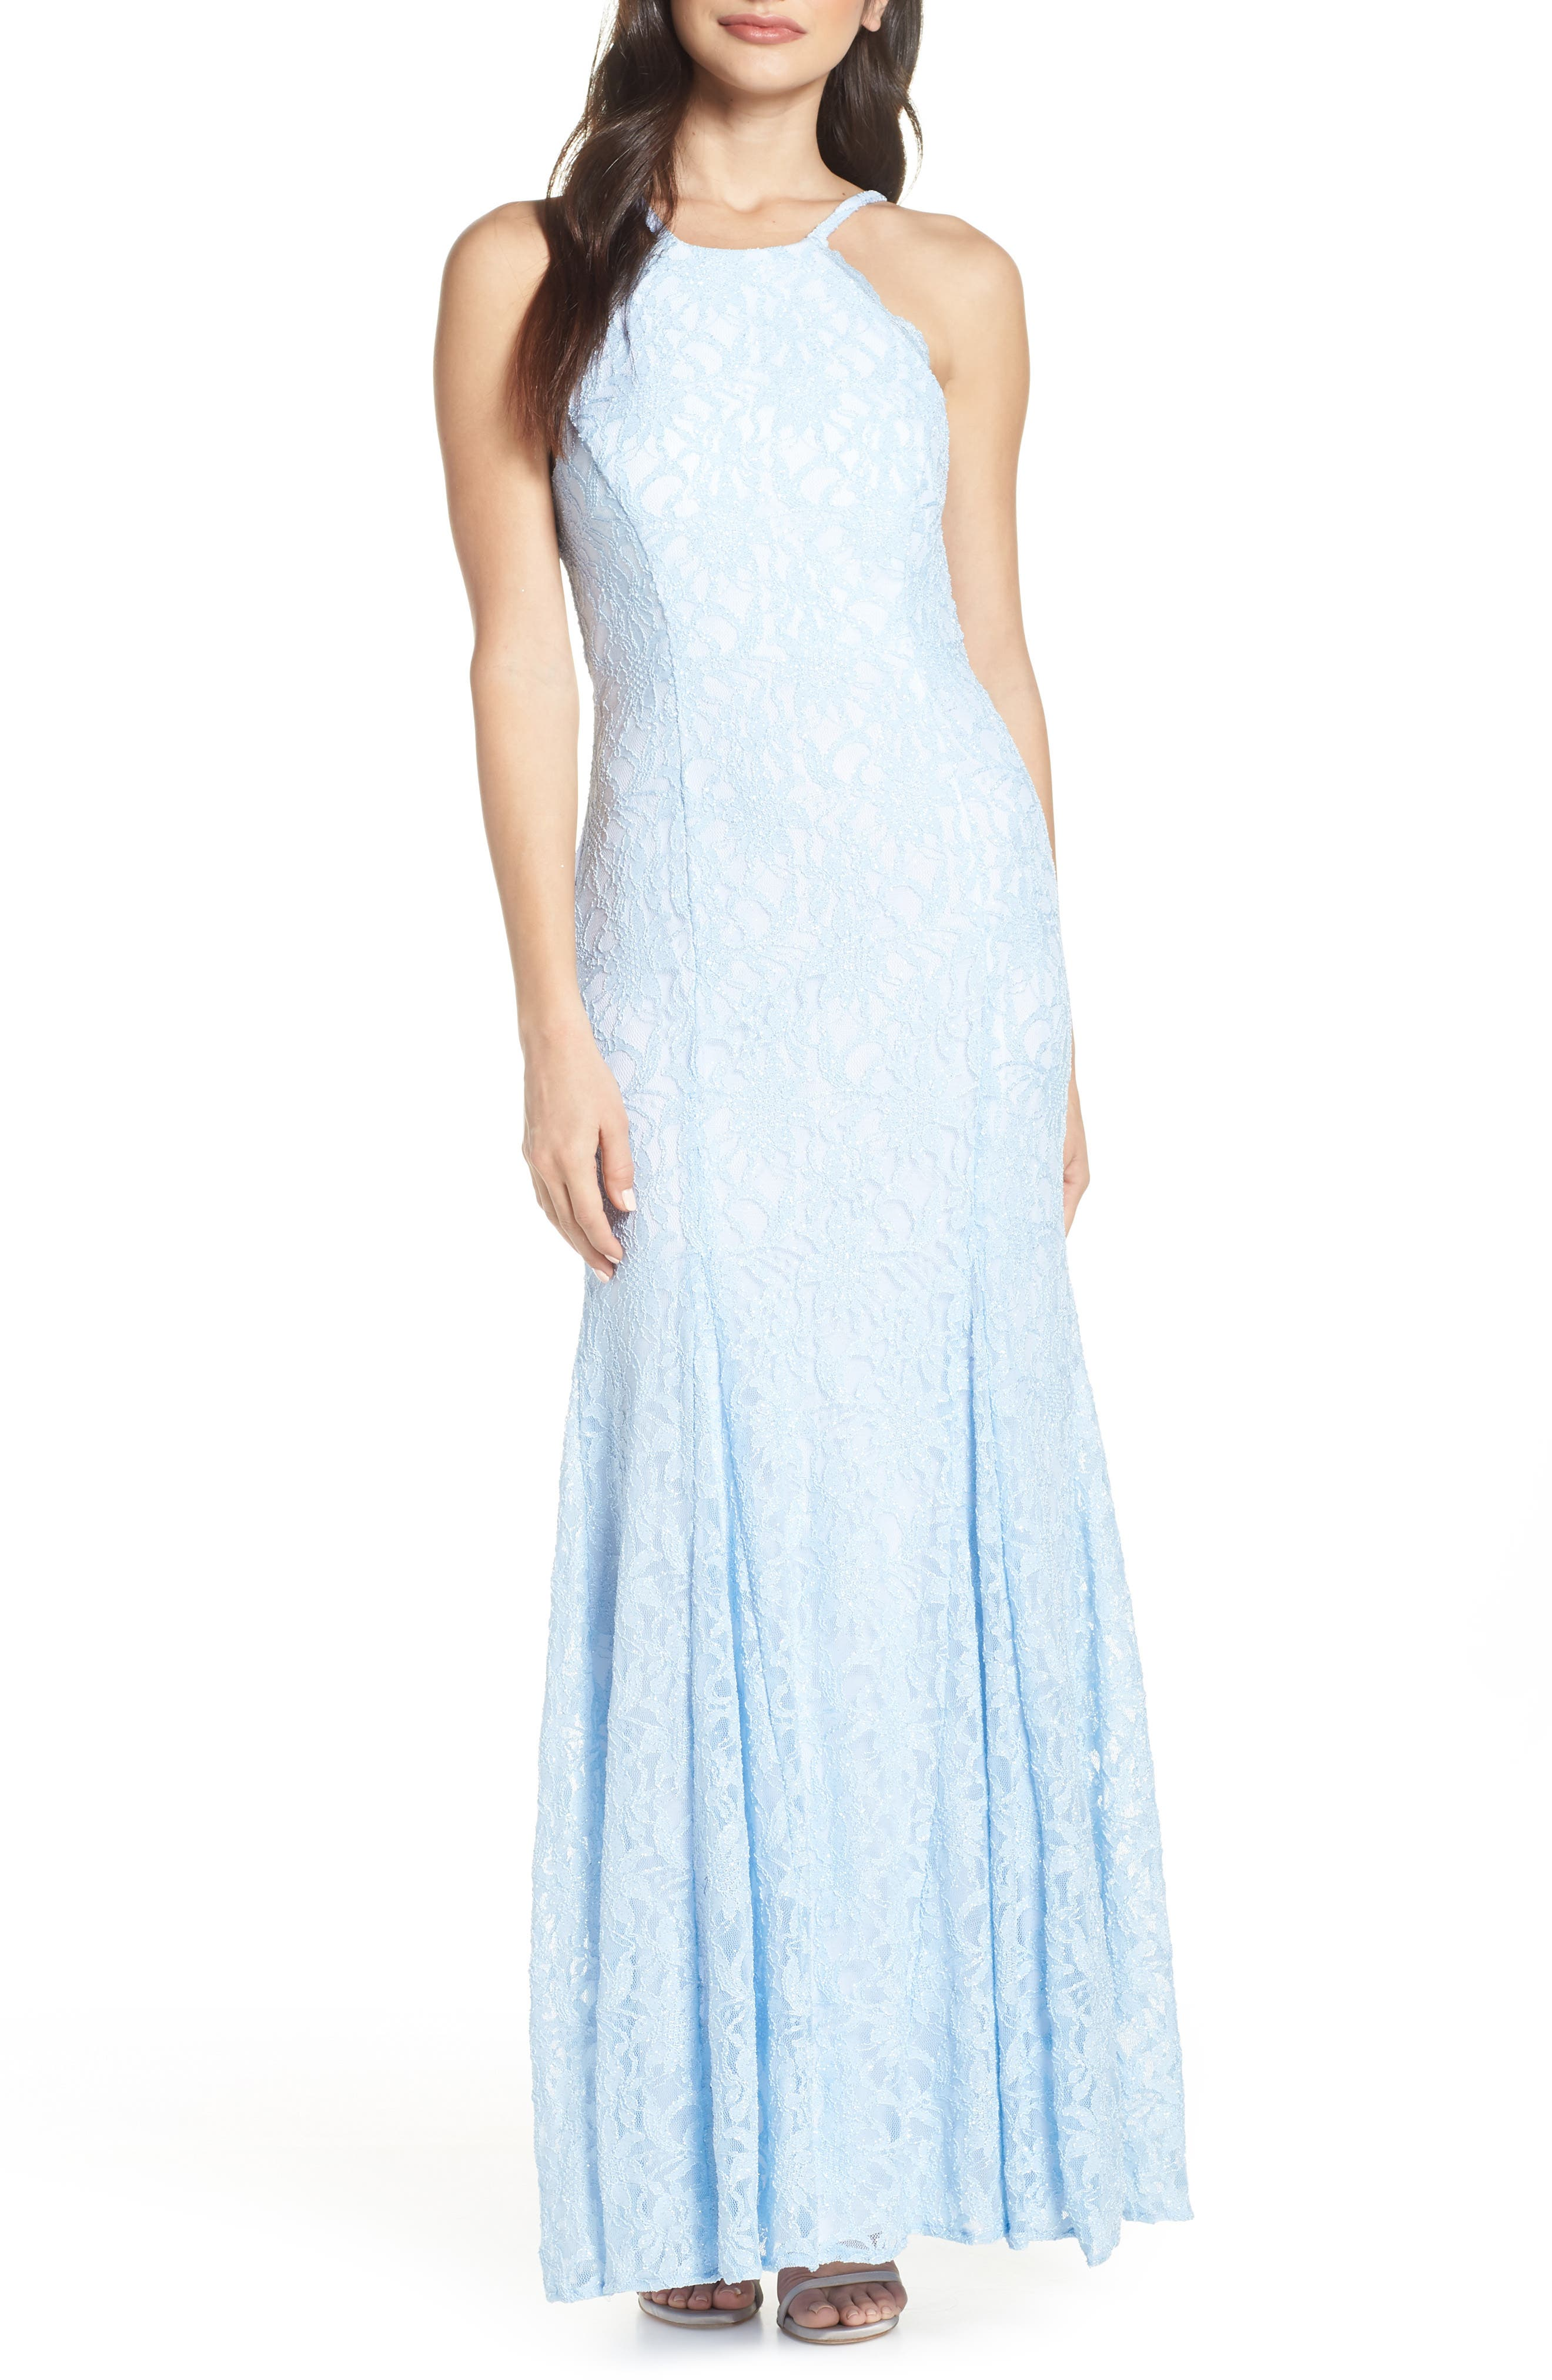 Morgan & Co. Strappy Back Lace Evening Dress, Blue